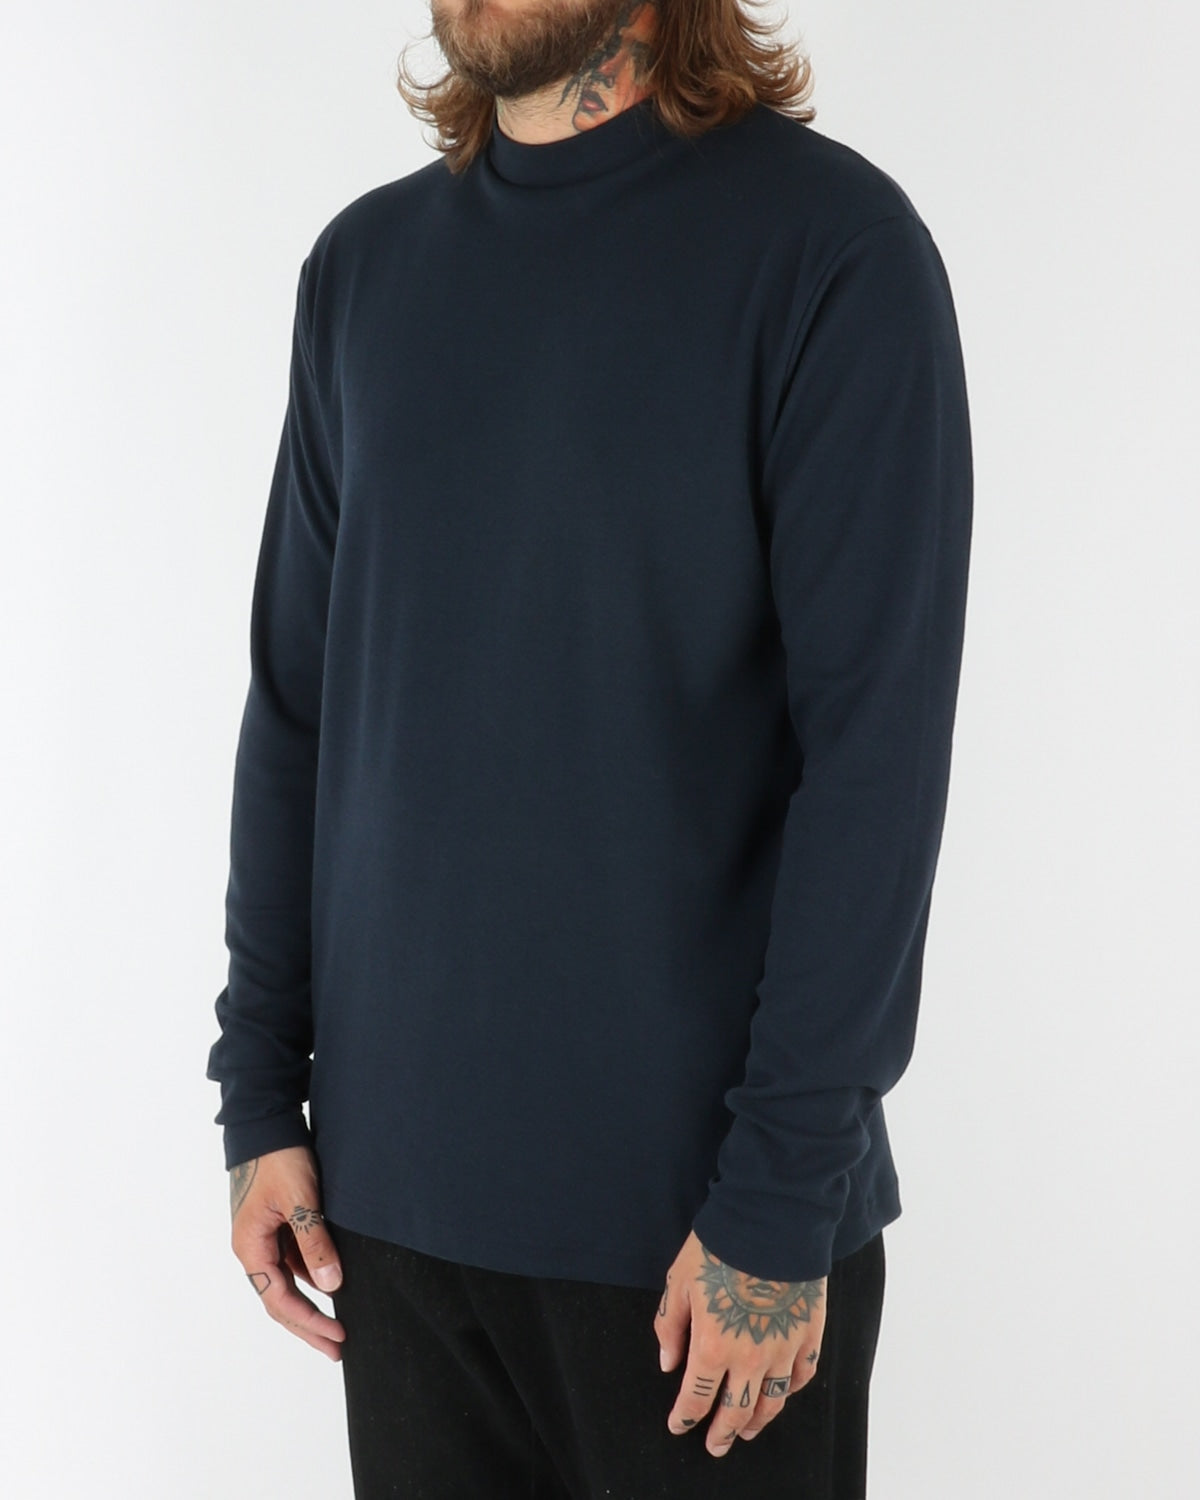 journal clothing_straight turtle neck_navy_view_2_2